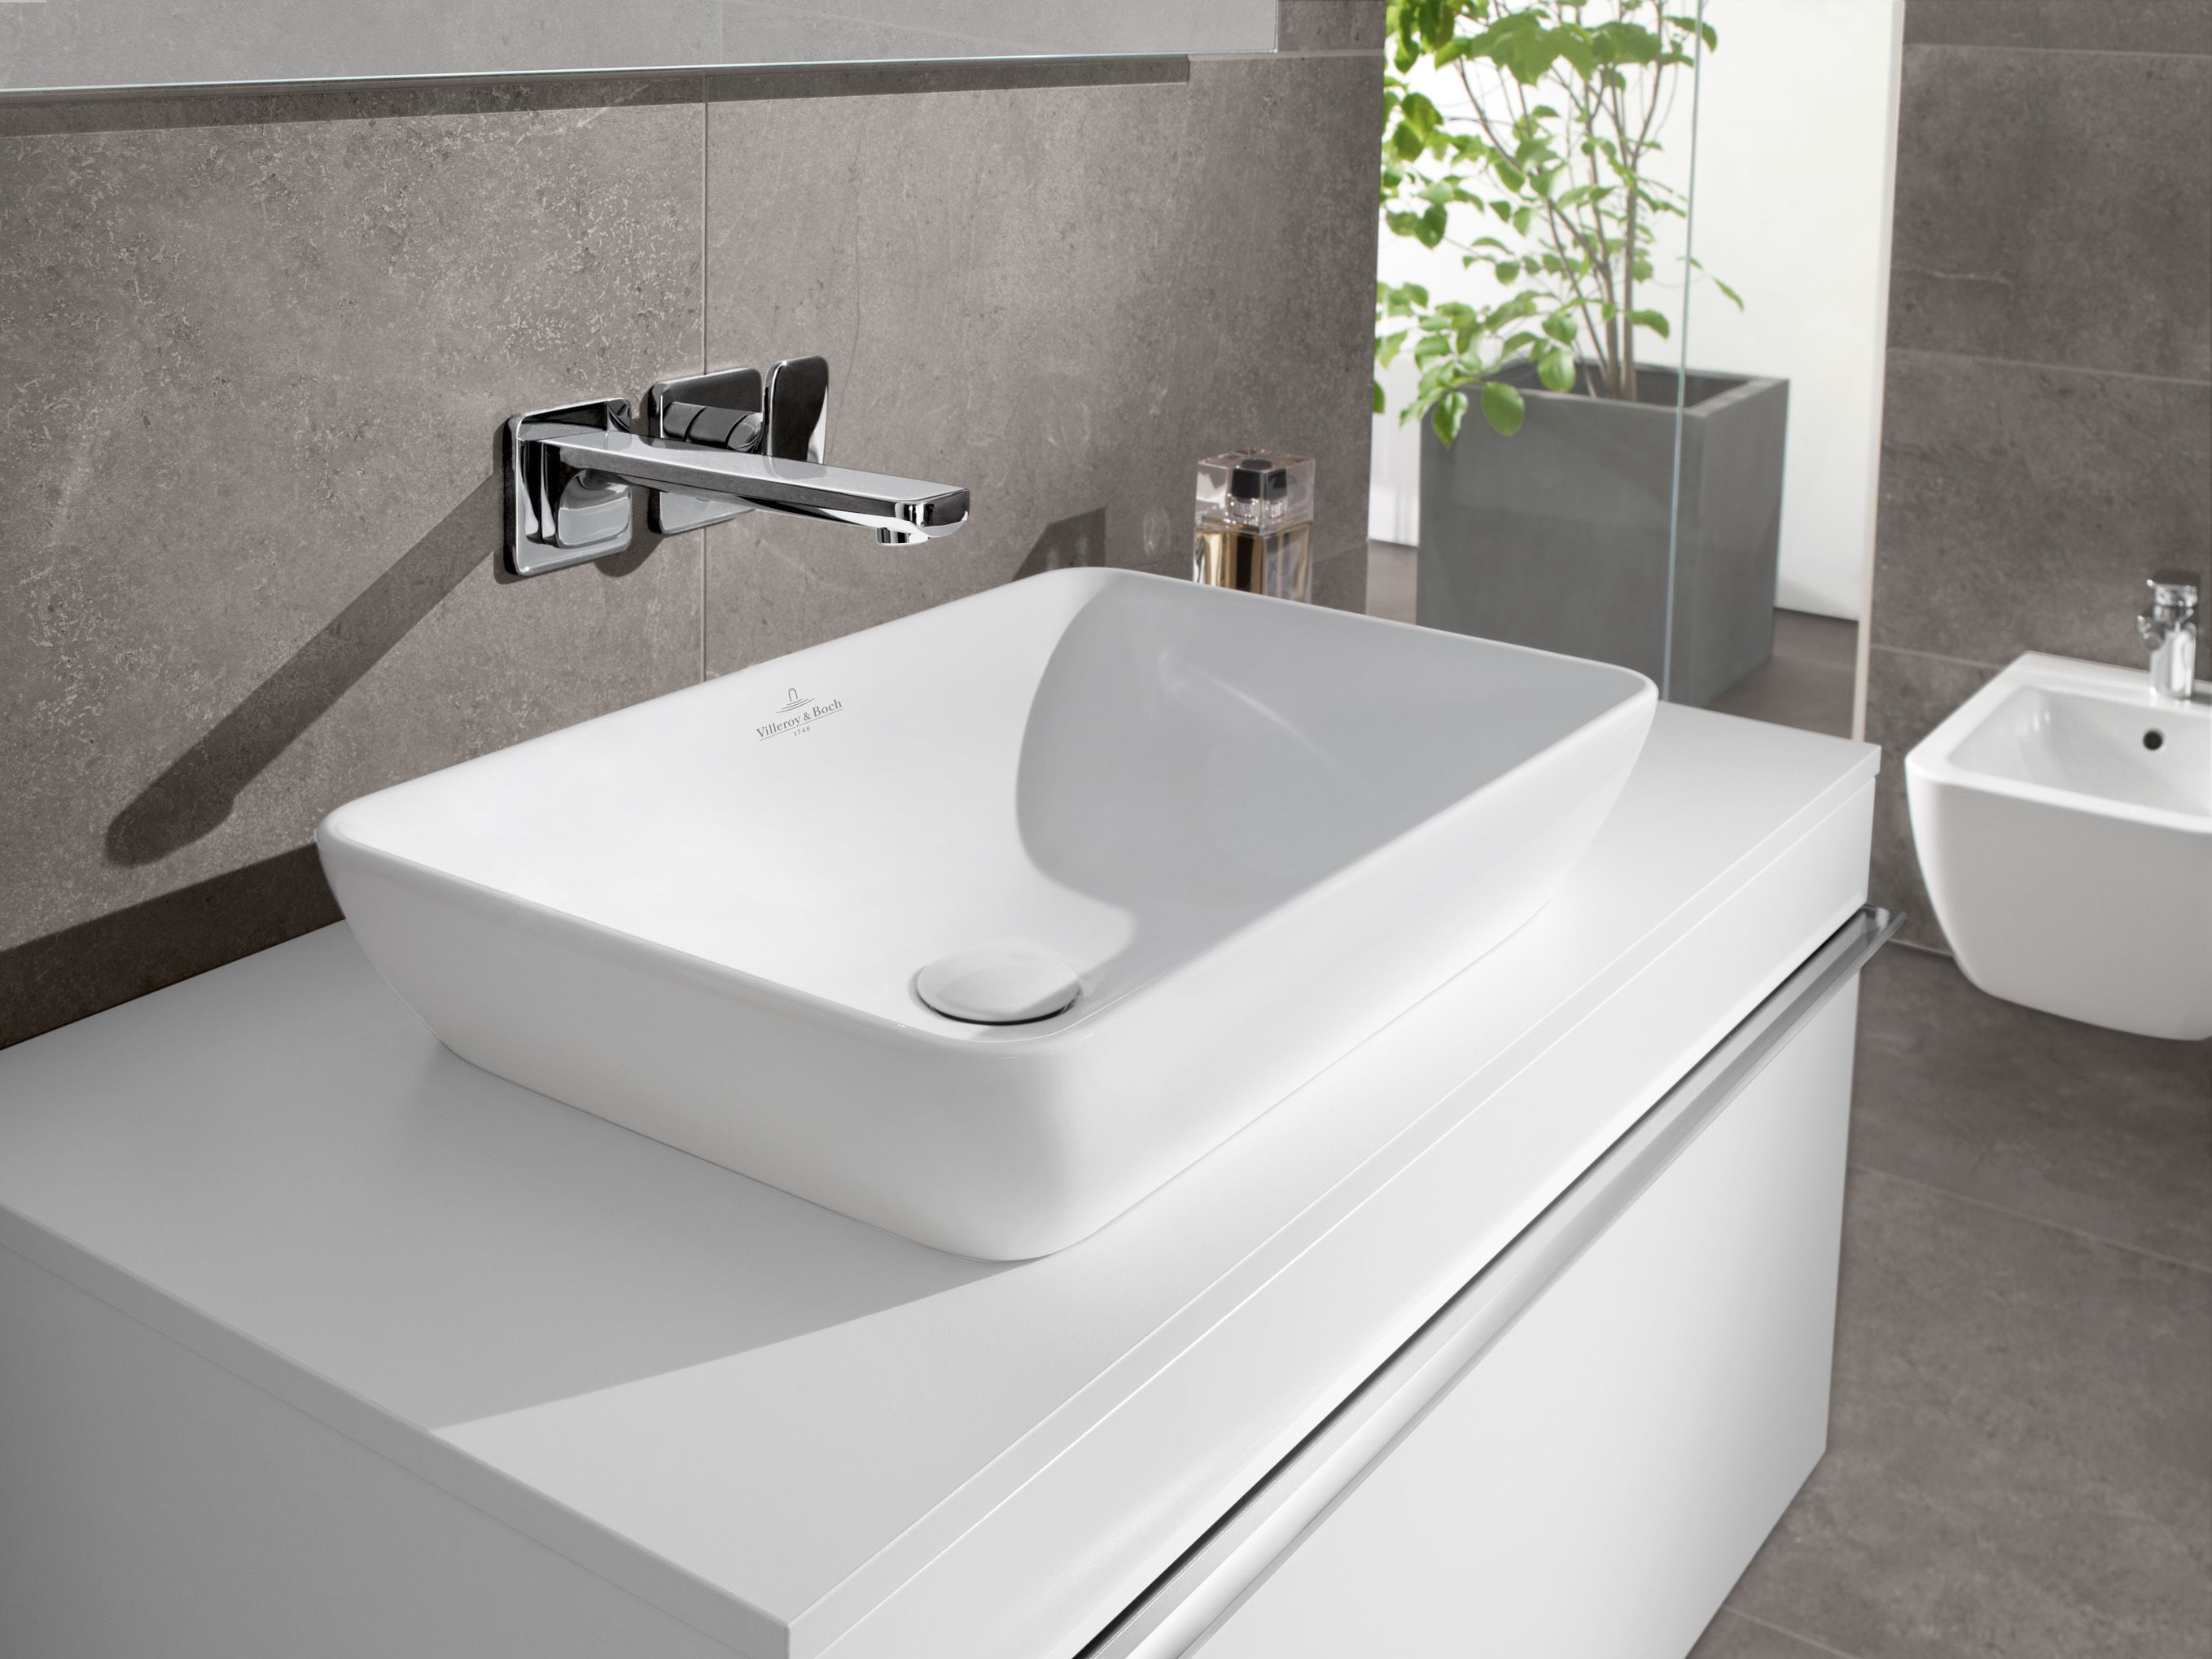 Glas Waschbecken Villeroy & Boch Venticello Learn More On Great Villeroy Boch Bathroom Furniture